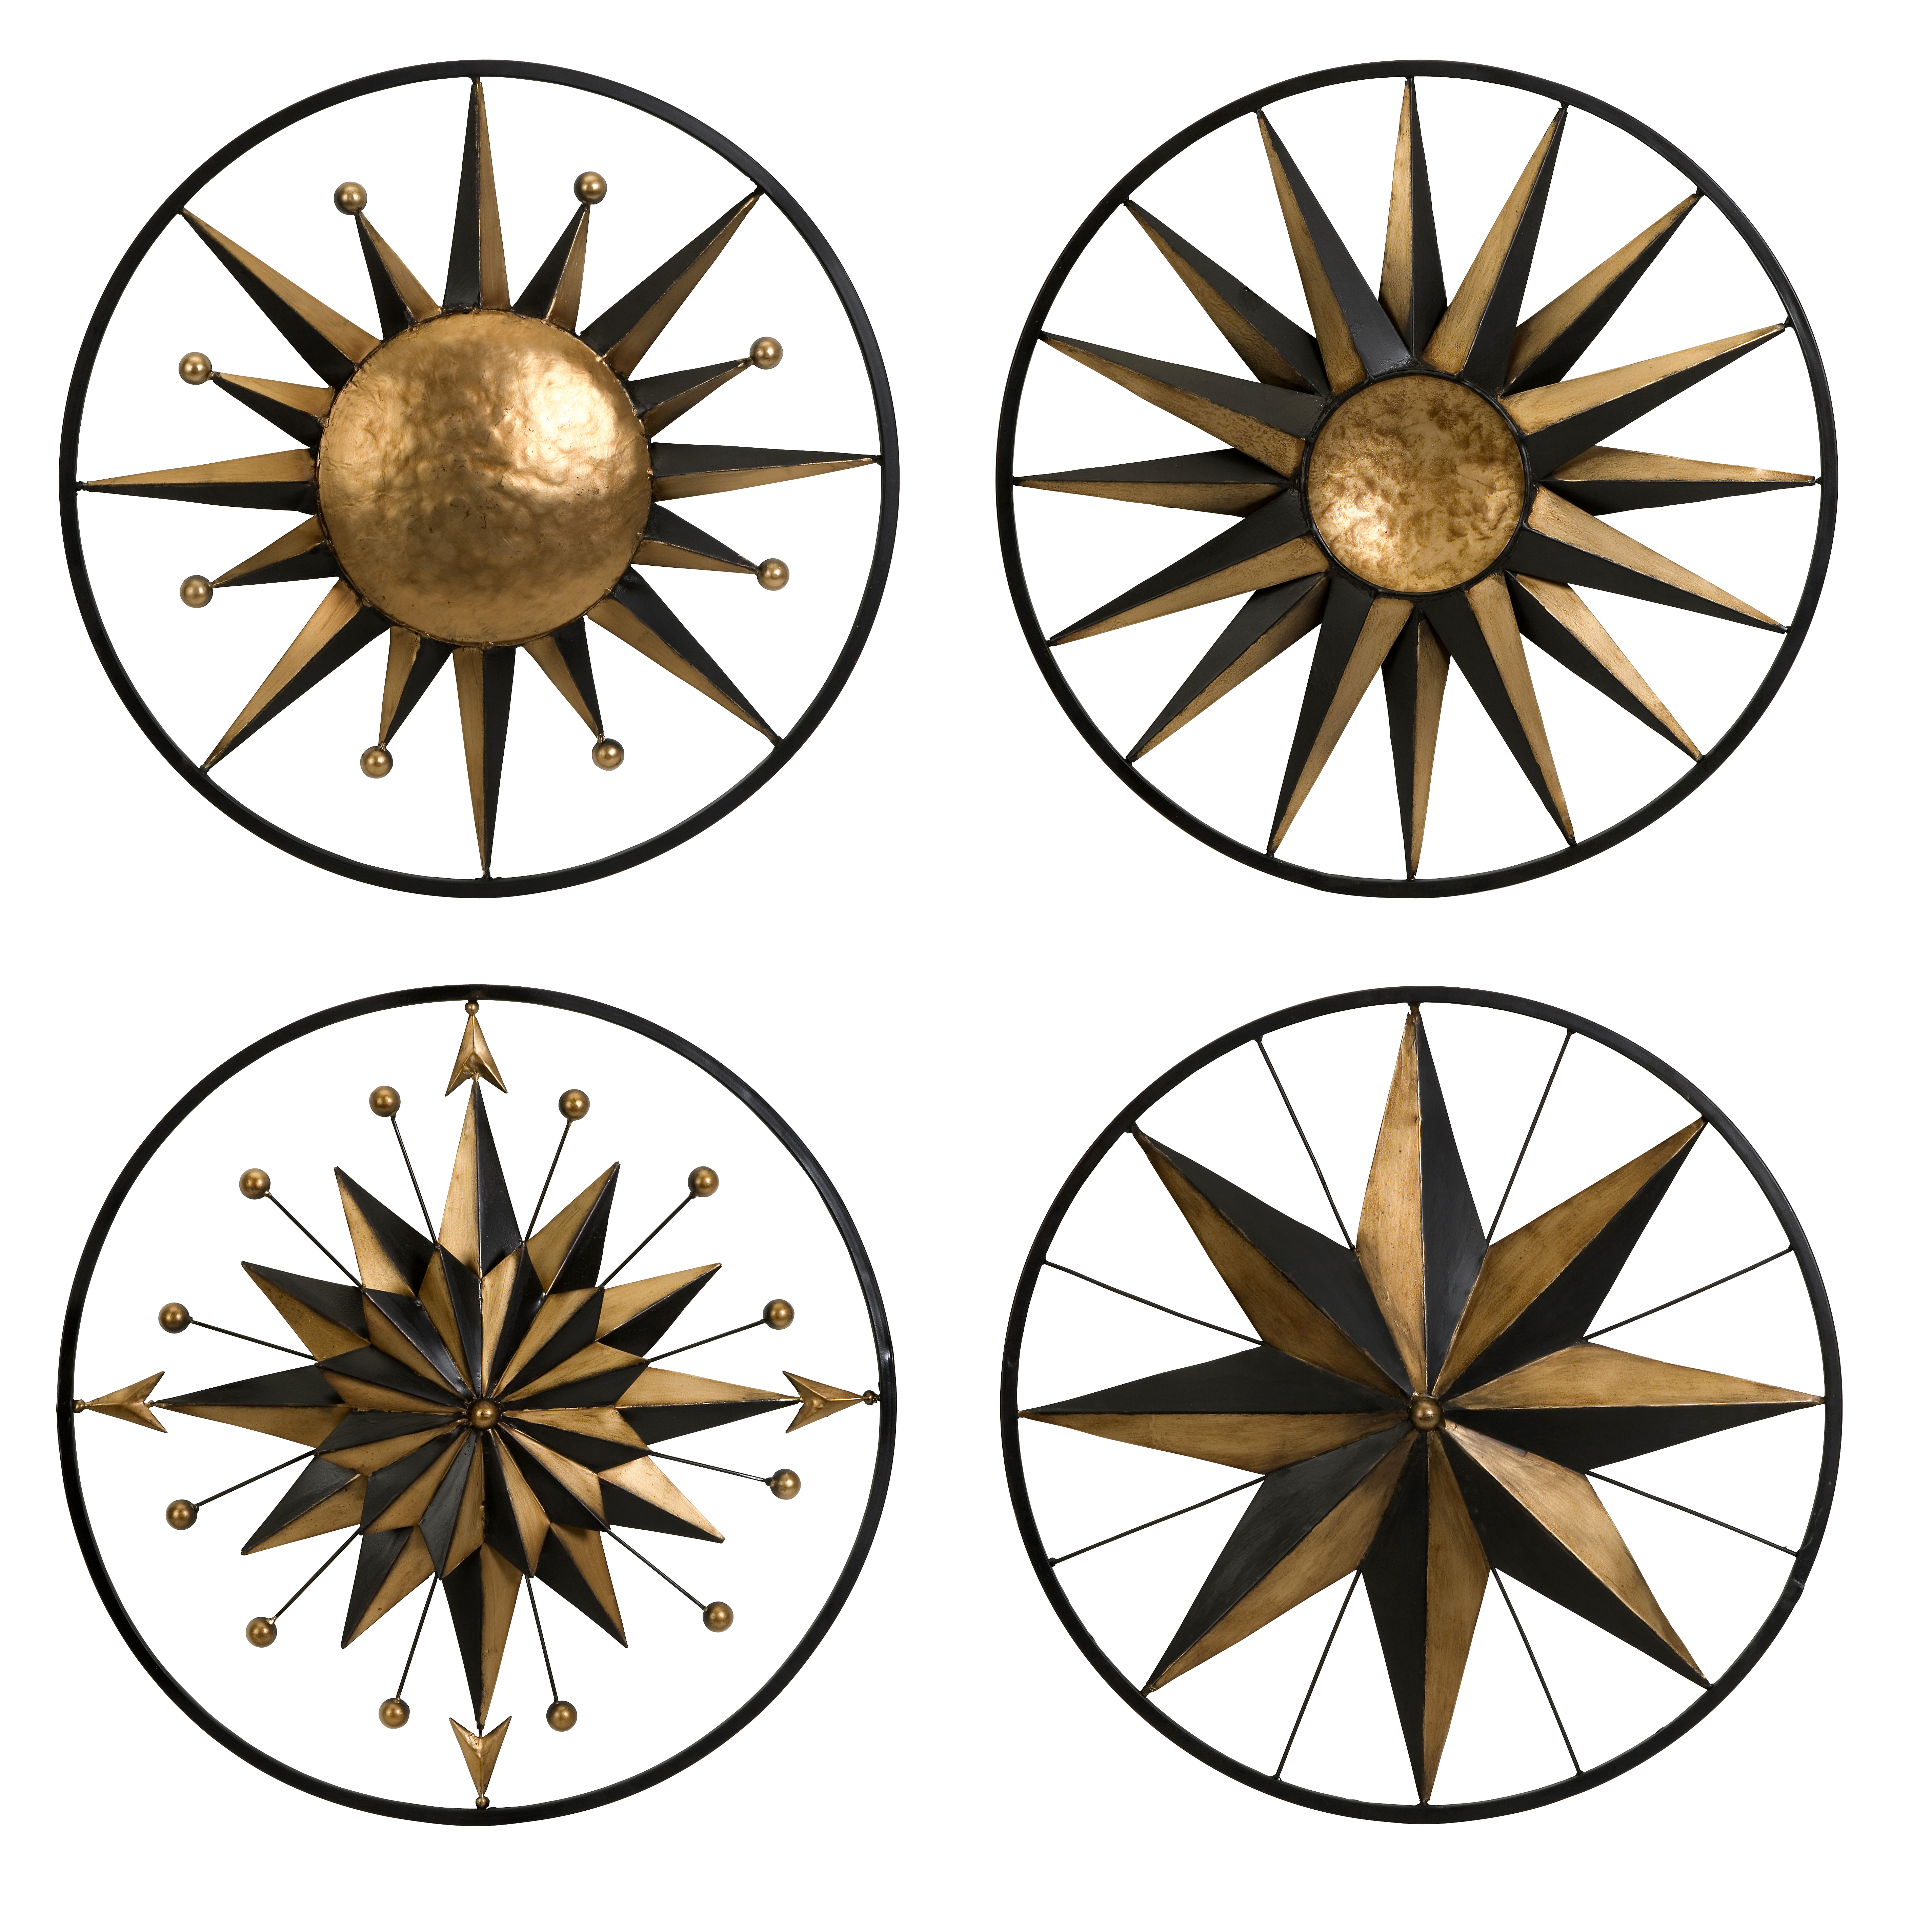 Home Improvement: Wall Decor Sets Throughout Reeds Migration Wall Decor Sets (set Of 3) (View 3 of 30)